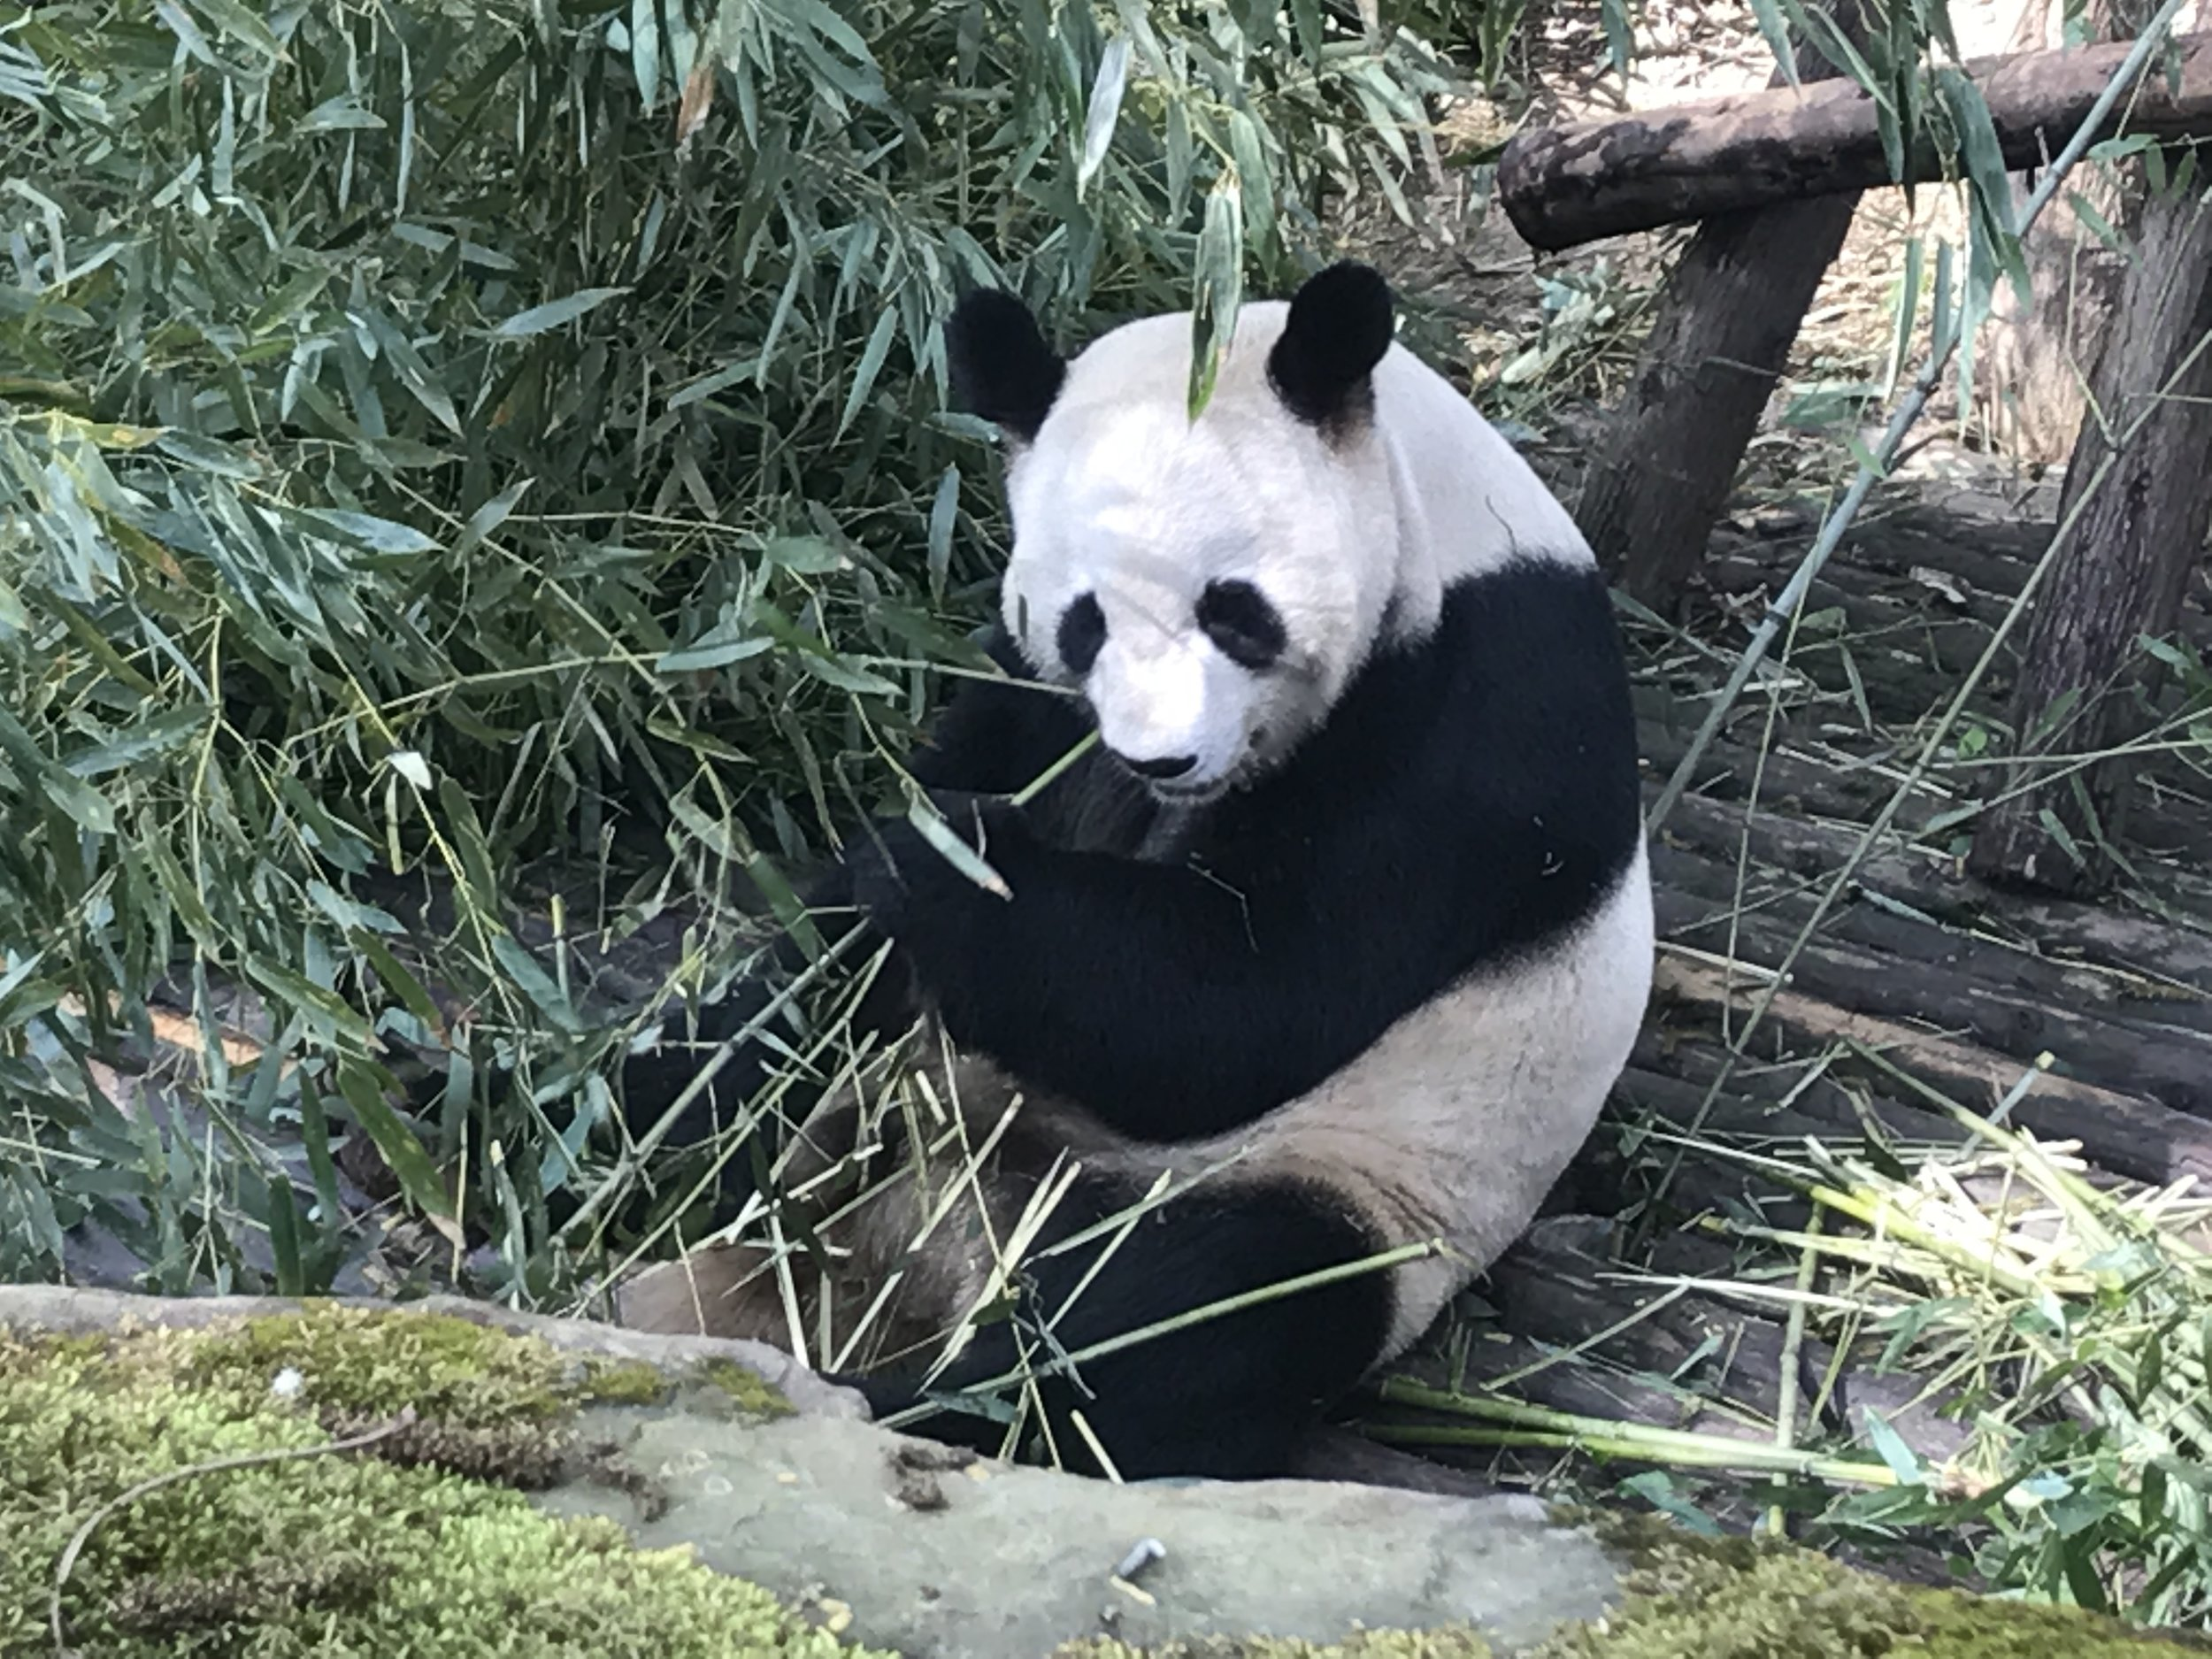 Xiongmao means both panda and 'chest hair' (different tone, but I still find this amusing)